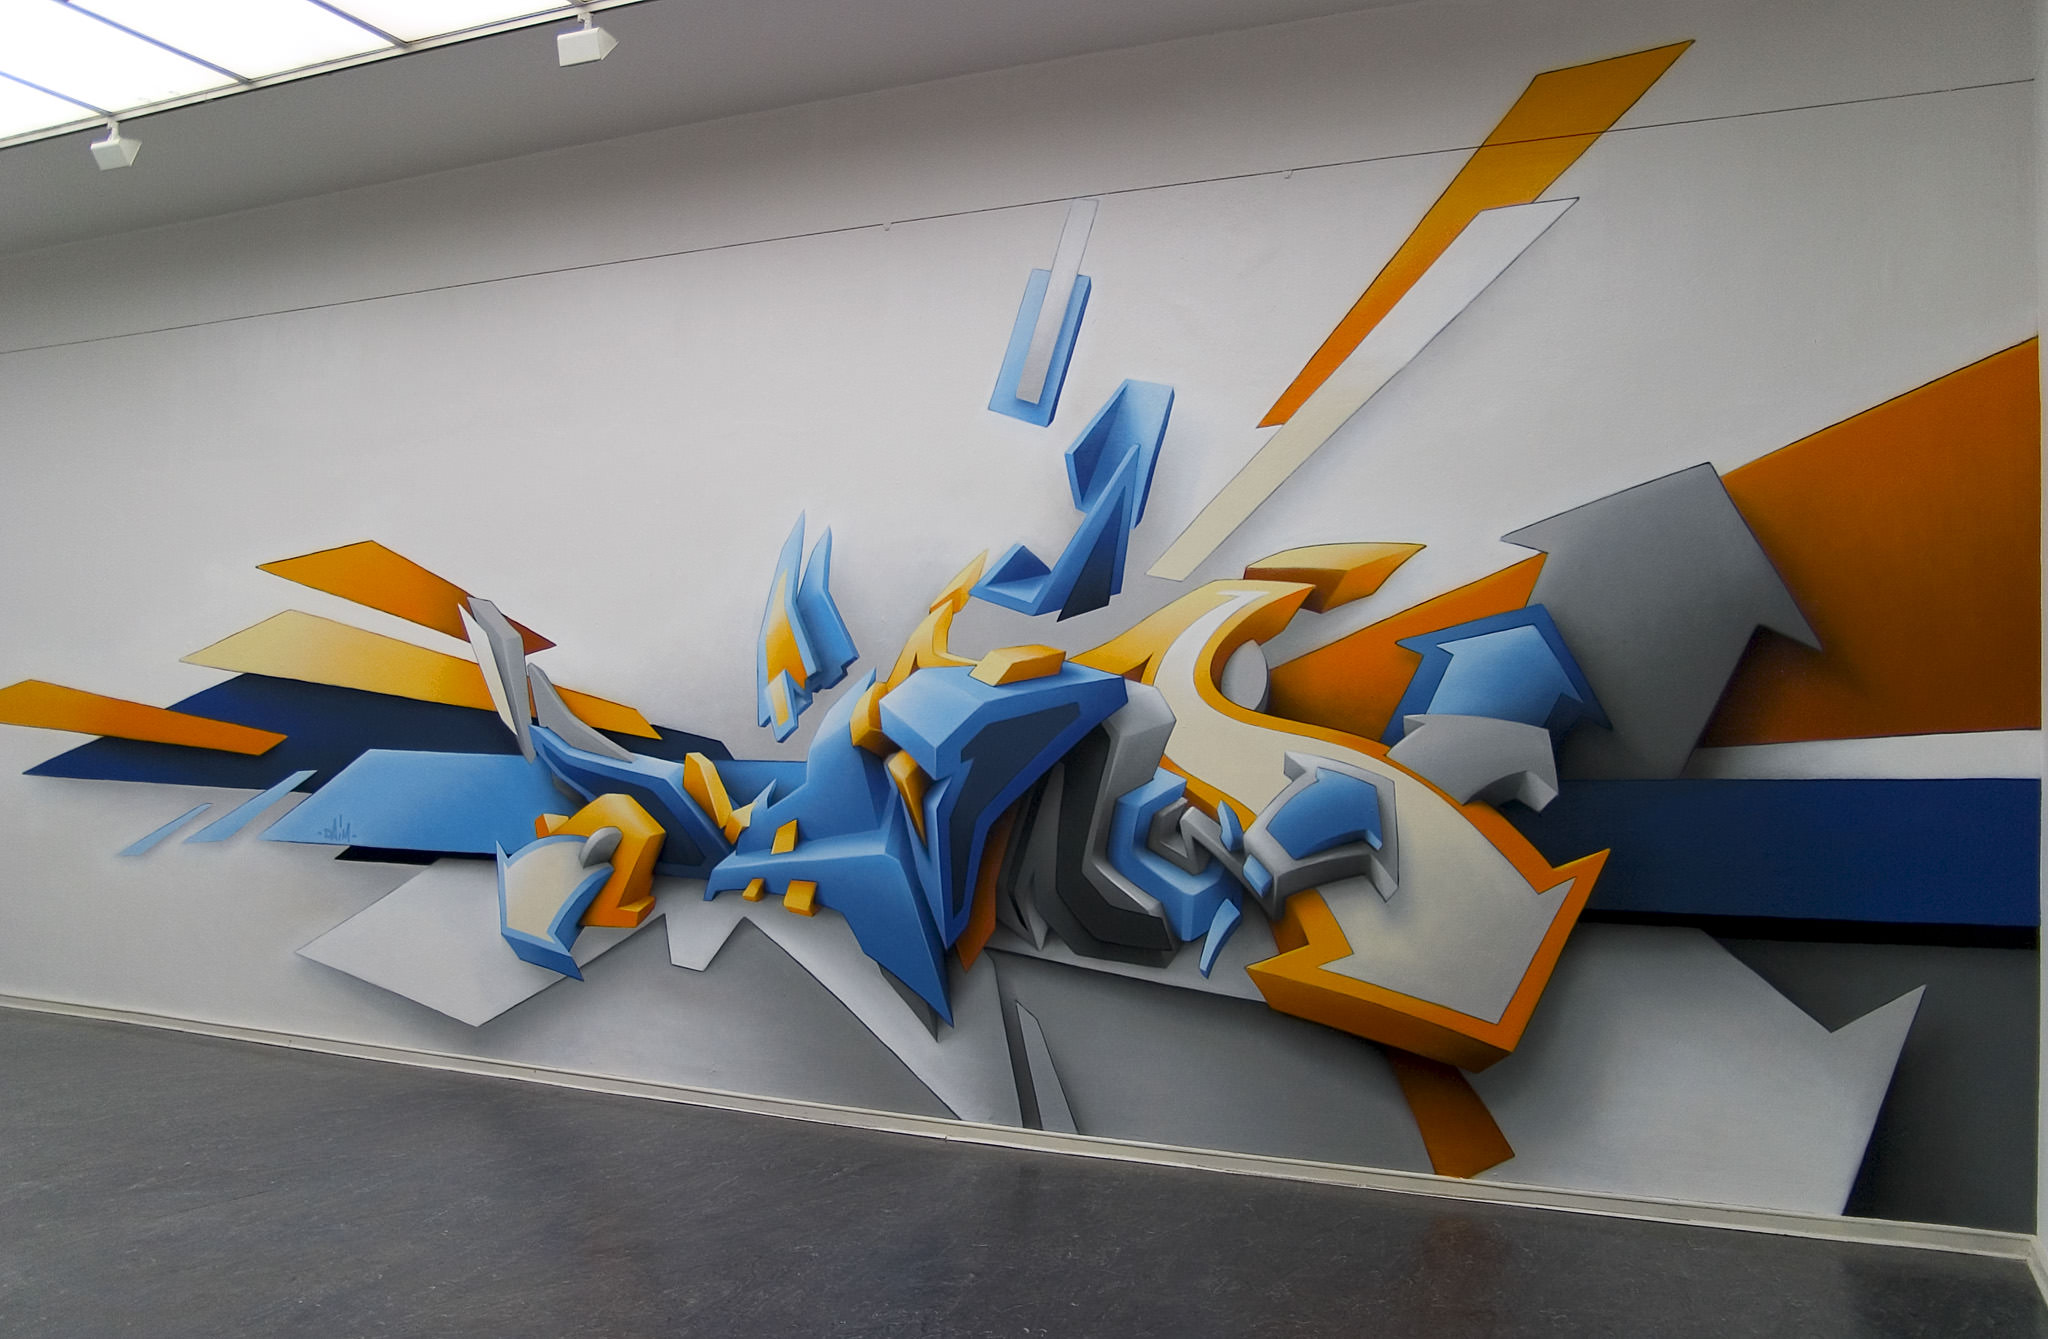 Artistic 3D Graffiti Wallpaper